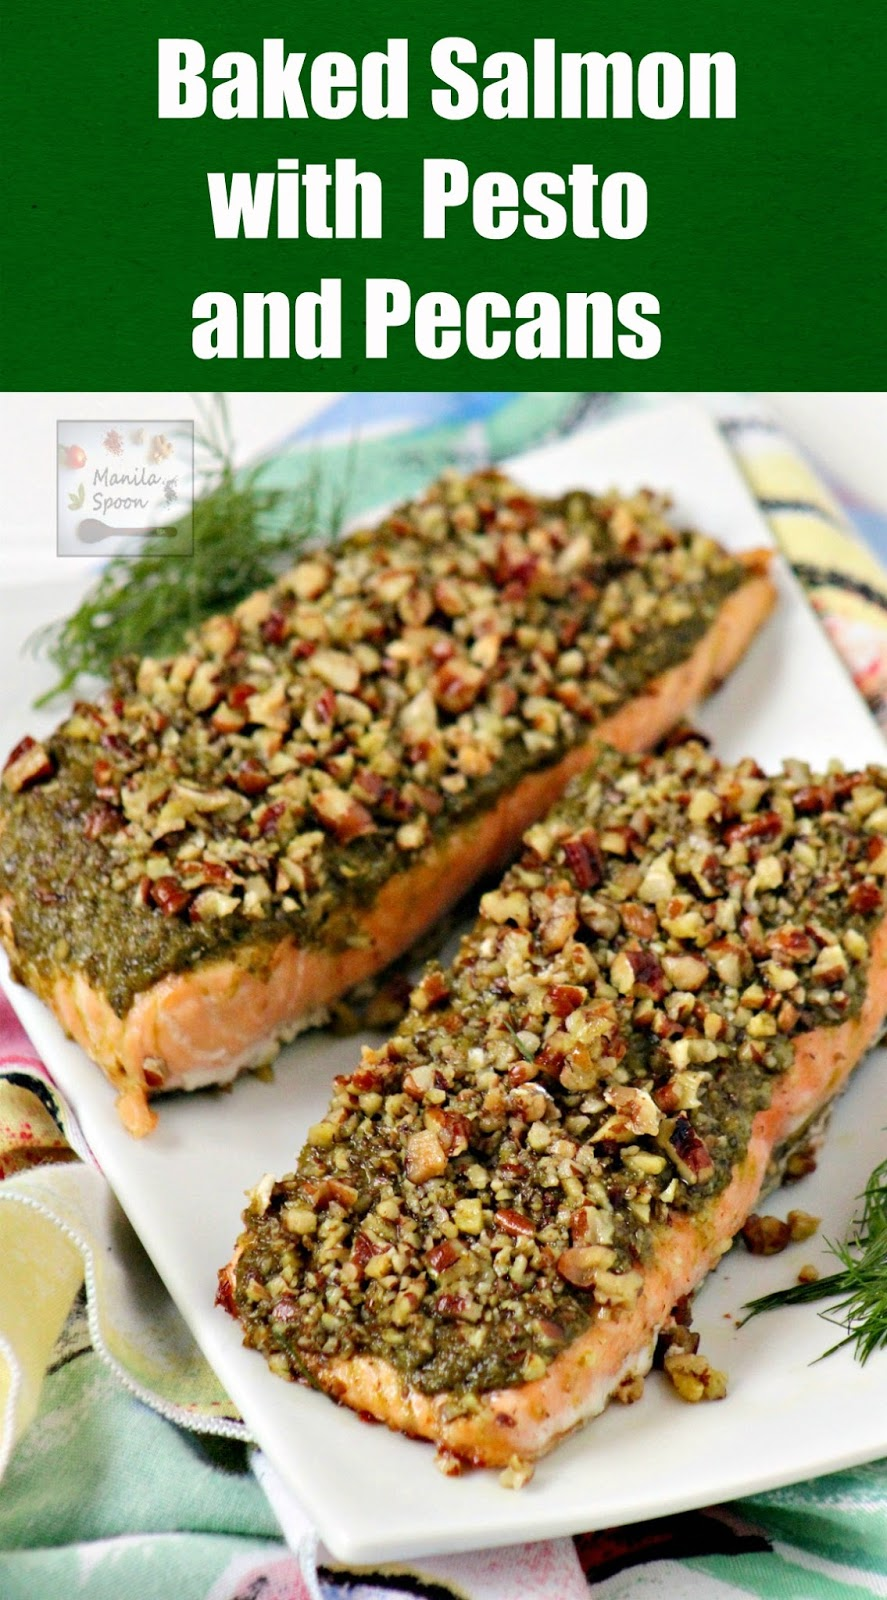 Just 3 Ingredients To Make This Easy, Quick And Very Tasty Baked Salmon  With Pesto